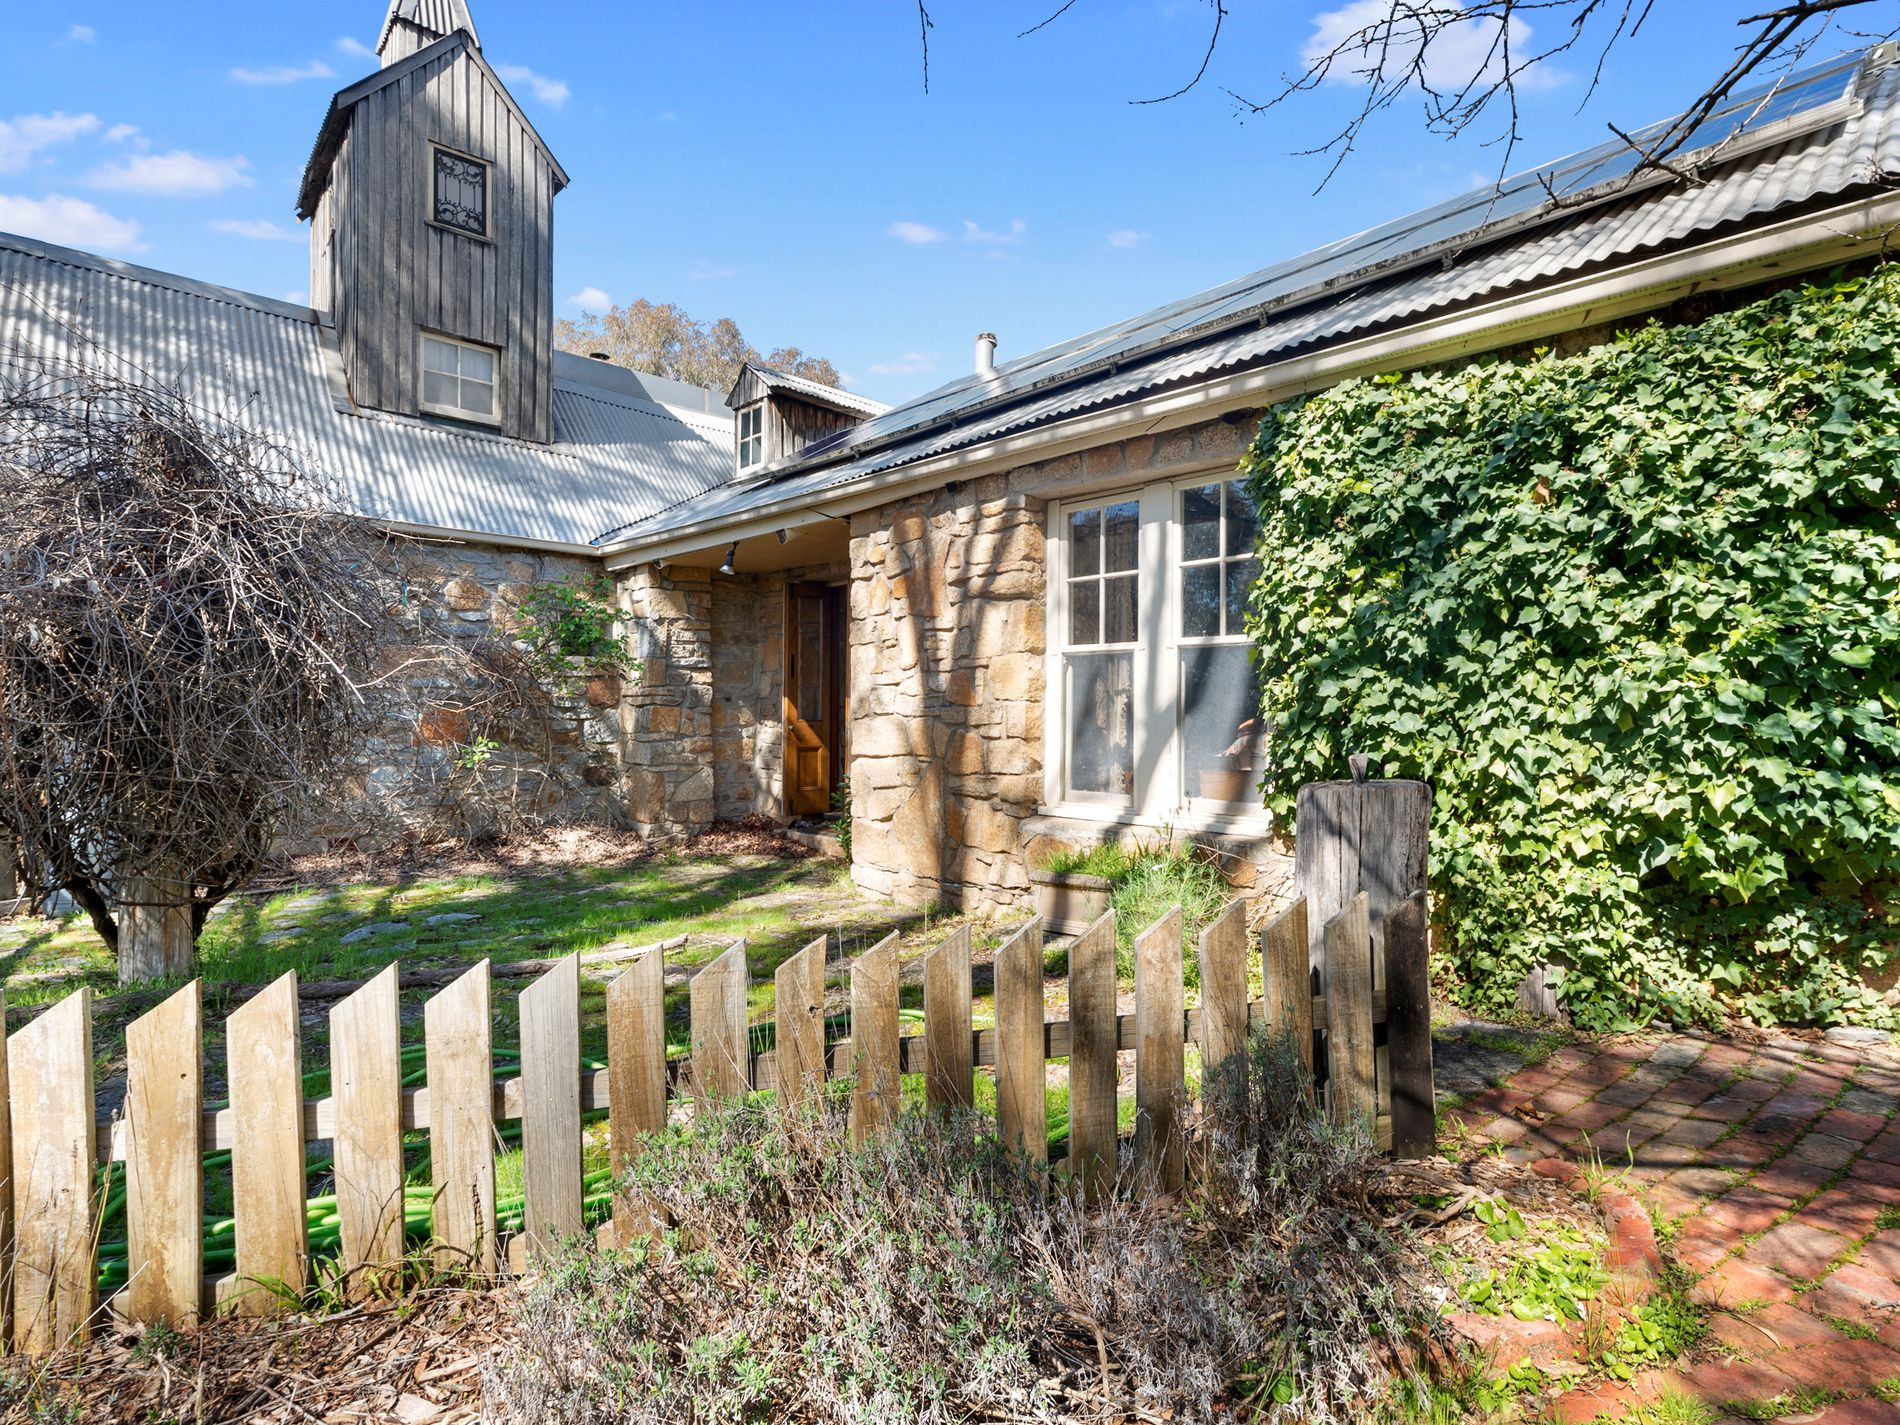 86 LYNSLANE ROAD, Longwood